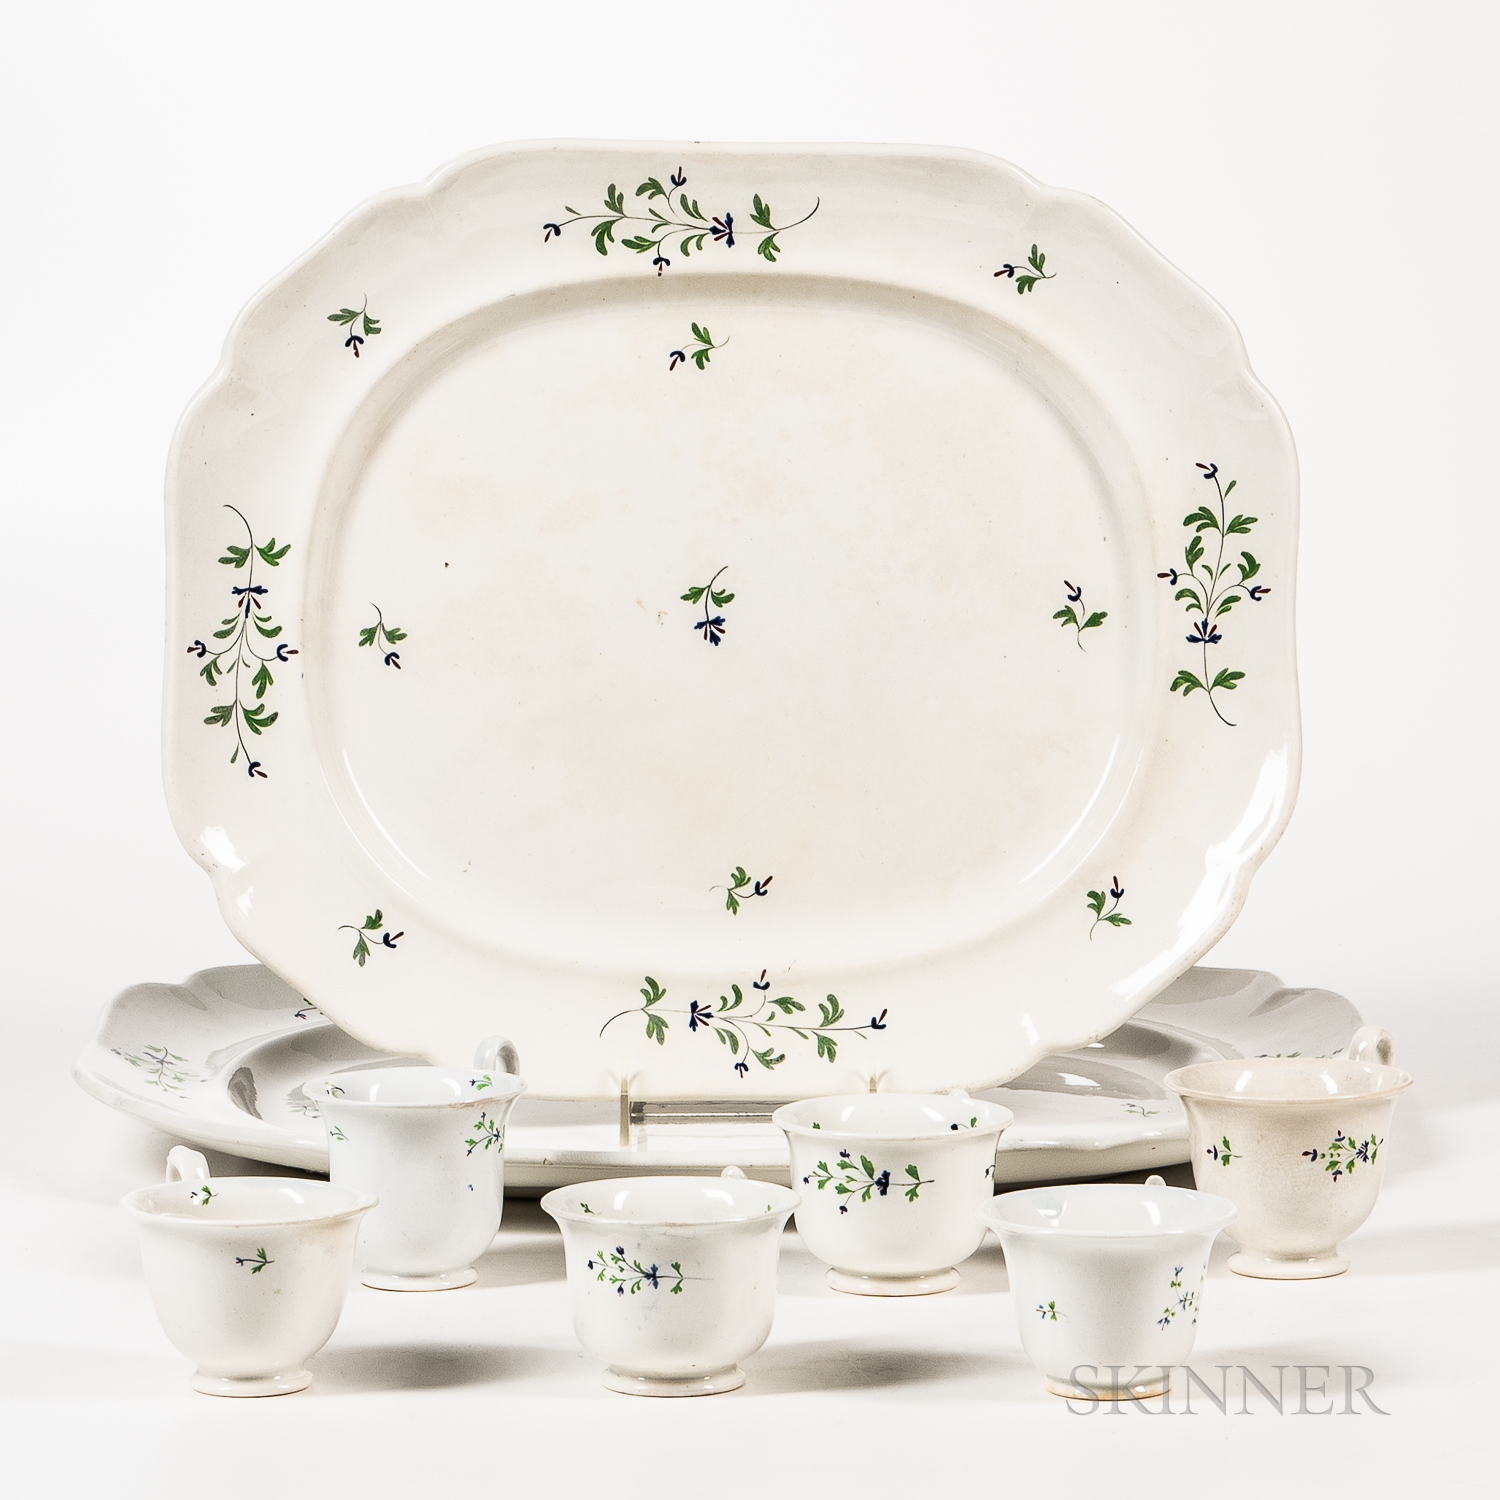 Group of Spring China Cups and Platters